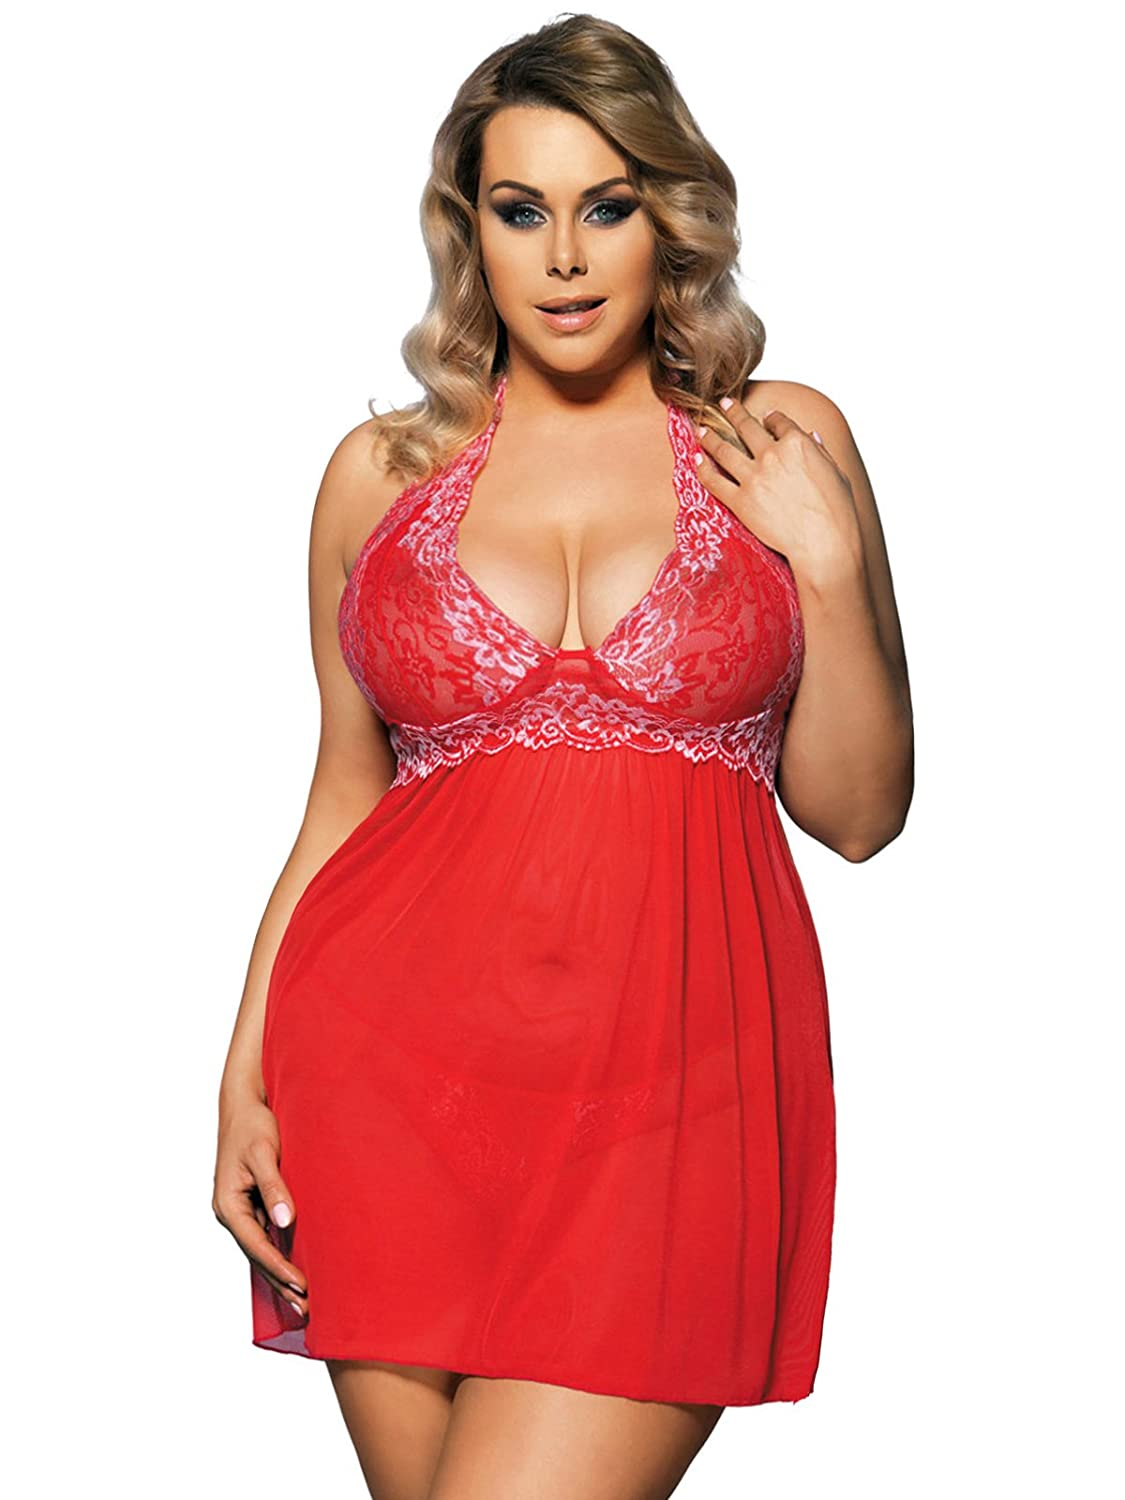 fc46396b5856 Design: Womens Plus Size Lace Babydoll Lingerie Set. Lace halter neck,  see-through, soft lace cups(no padded) with v neck, lace ...